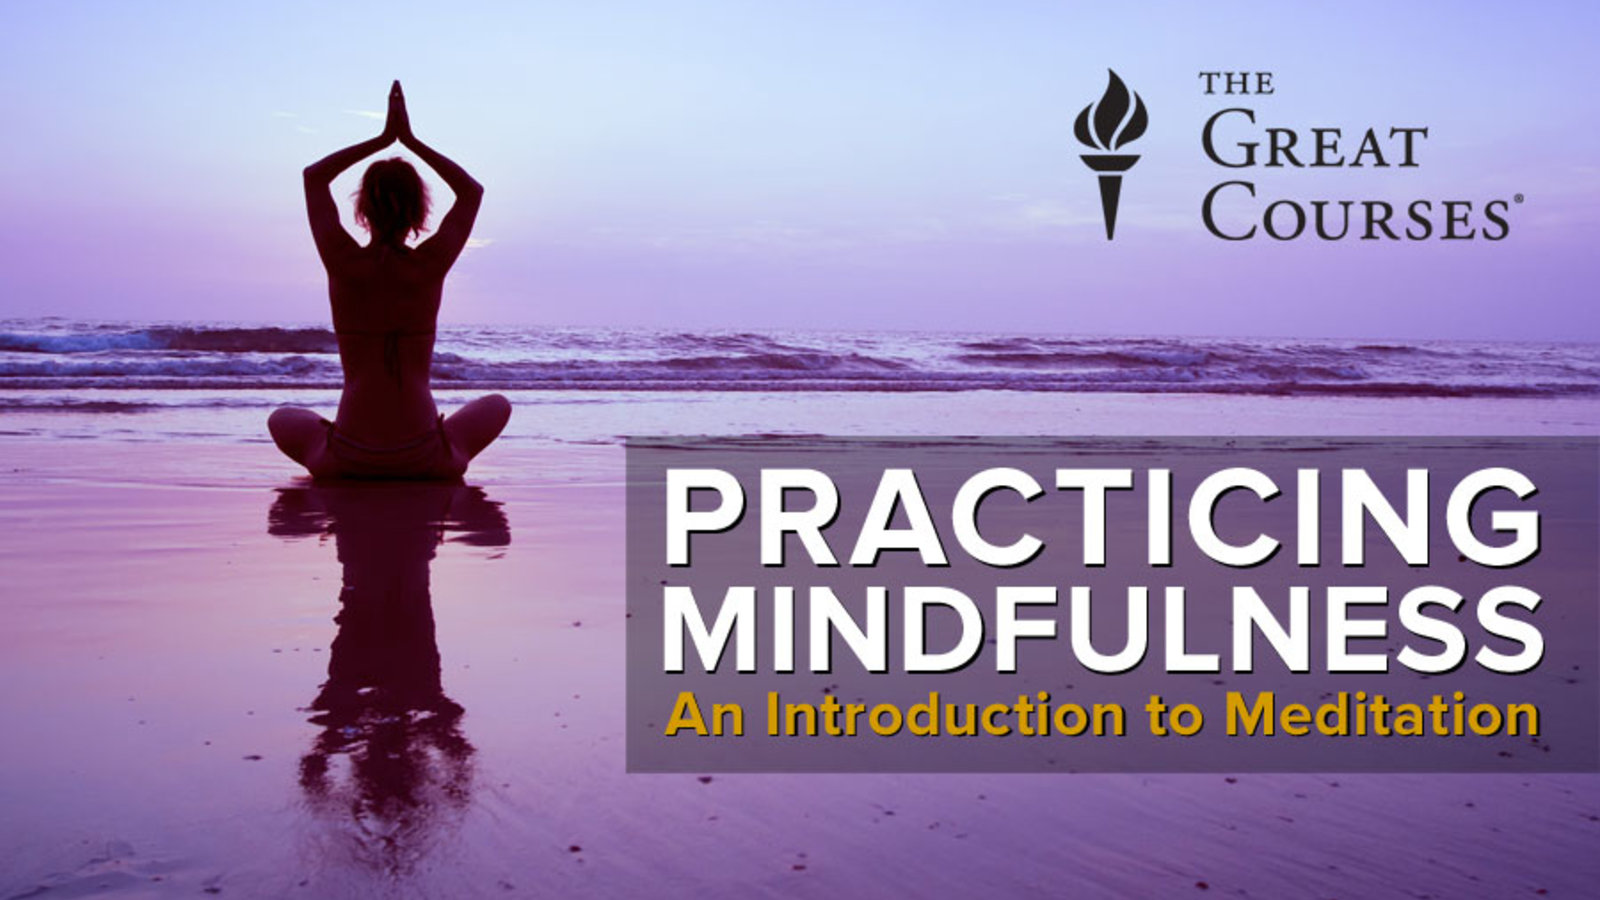 Practicing Mindfulness - An Introduction to Meditation